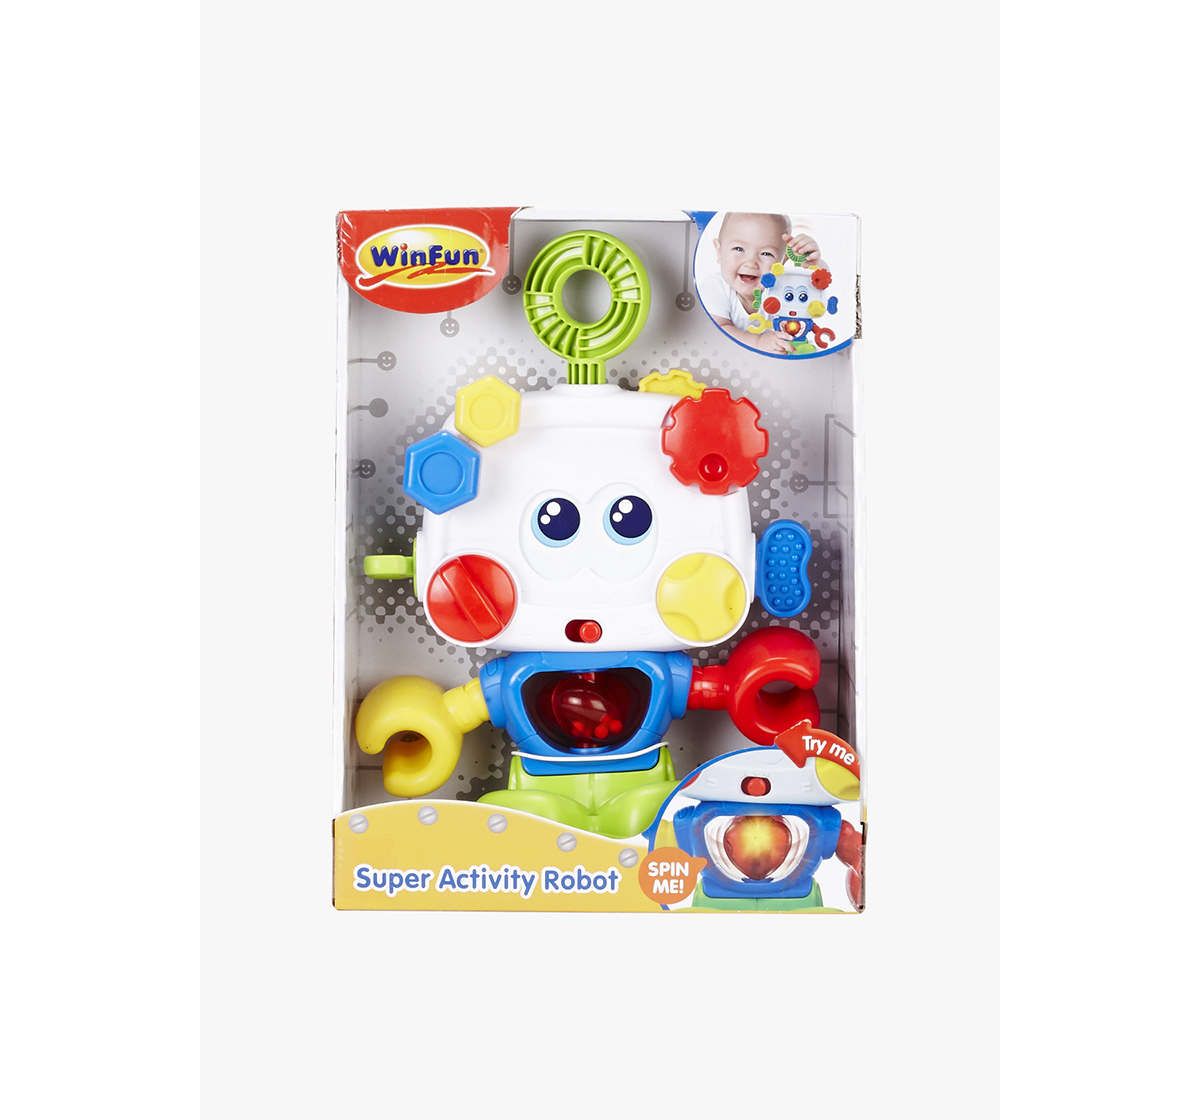 WinFun   Winfun Super Activity Robot Learning Toys for Kids age 9M+ (White)